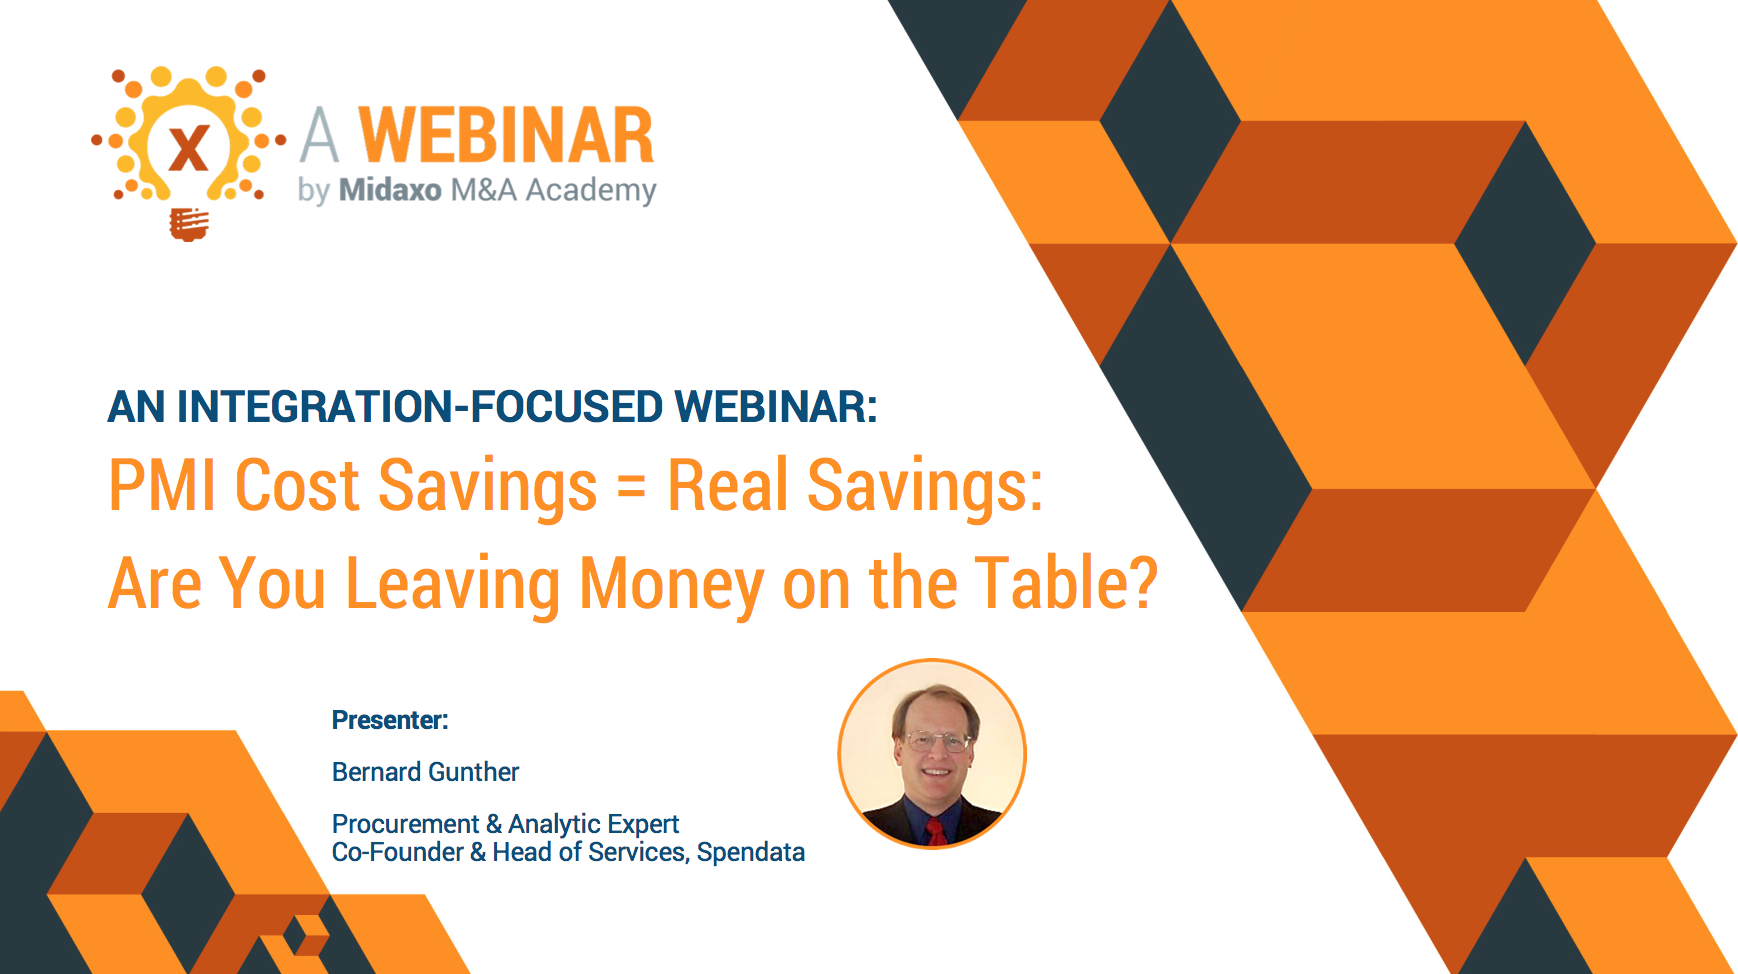 Webinar: PMI Cost Savings = Real Savings: Are You Leaving Money on the Table?